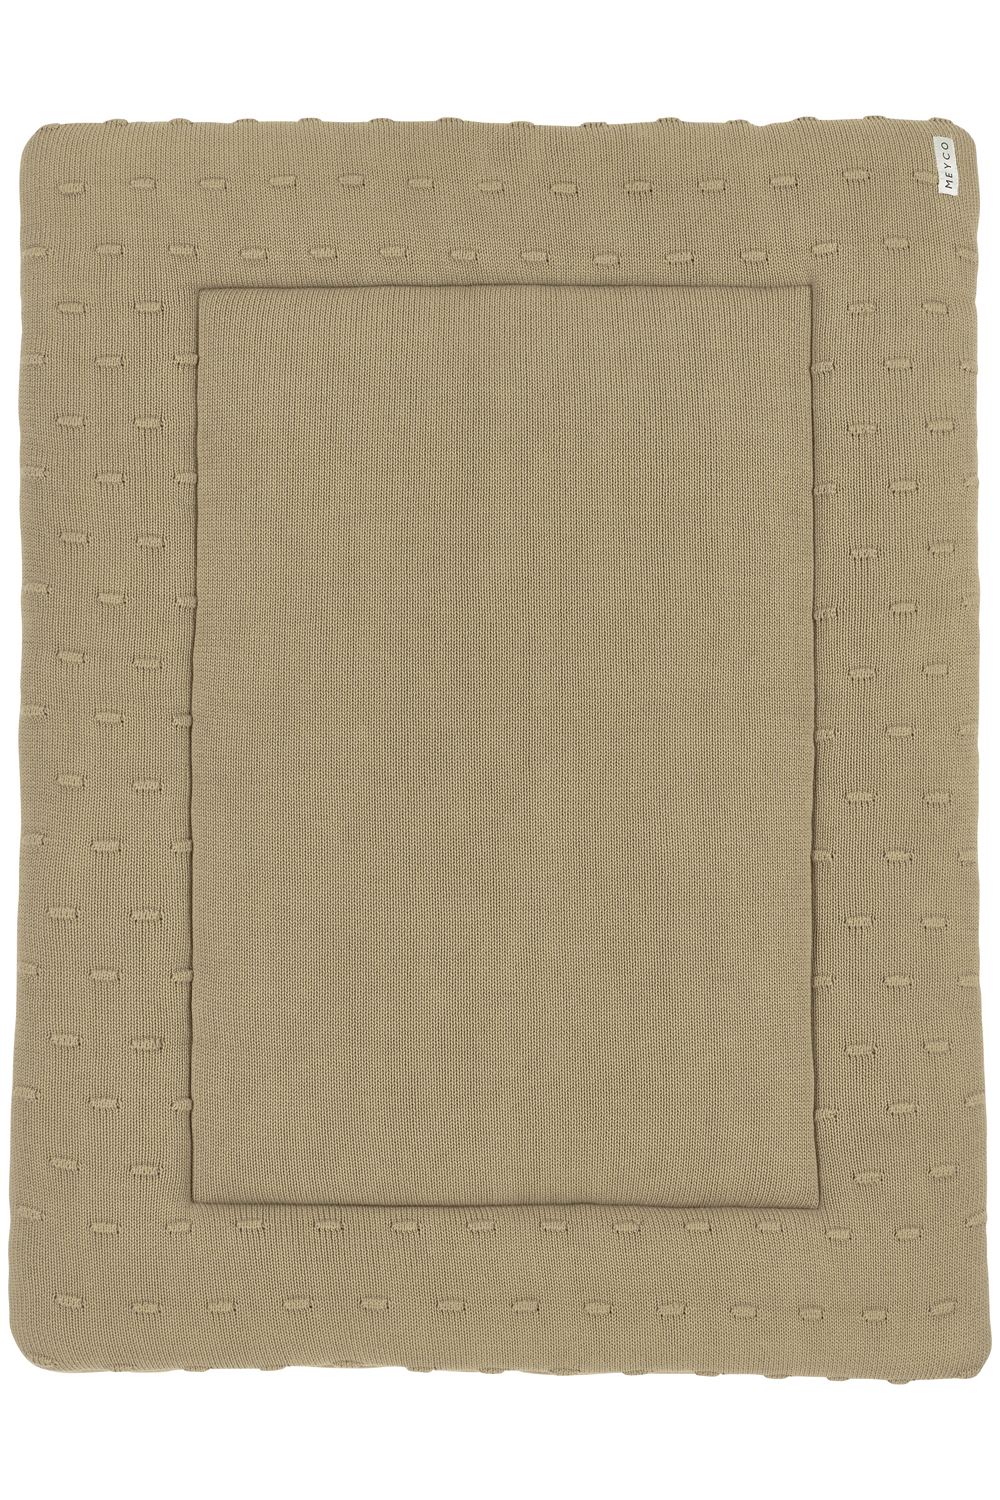 Boxkleed Knots - Taupe - 77x97cm